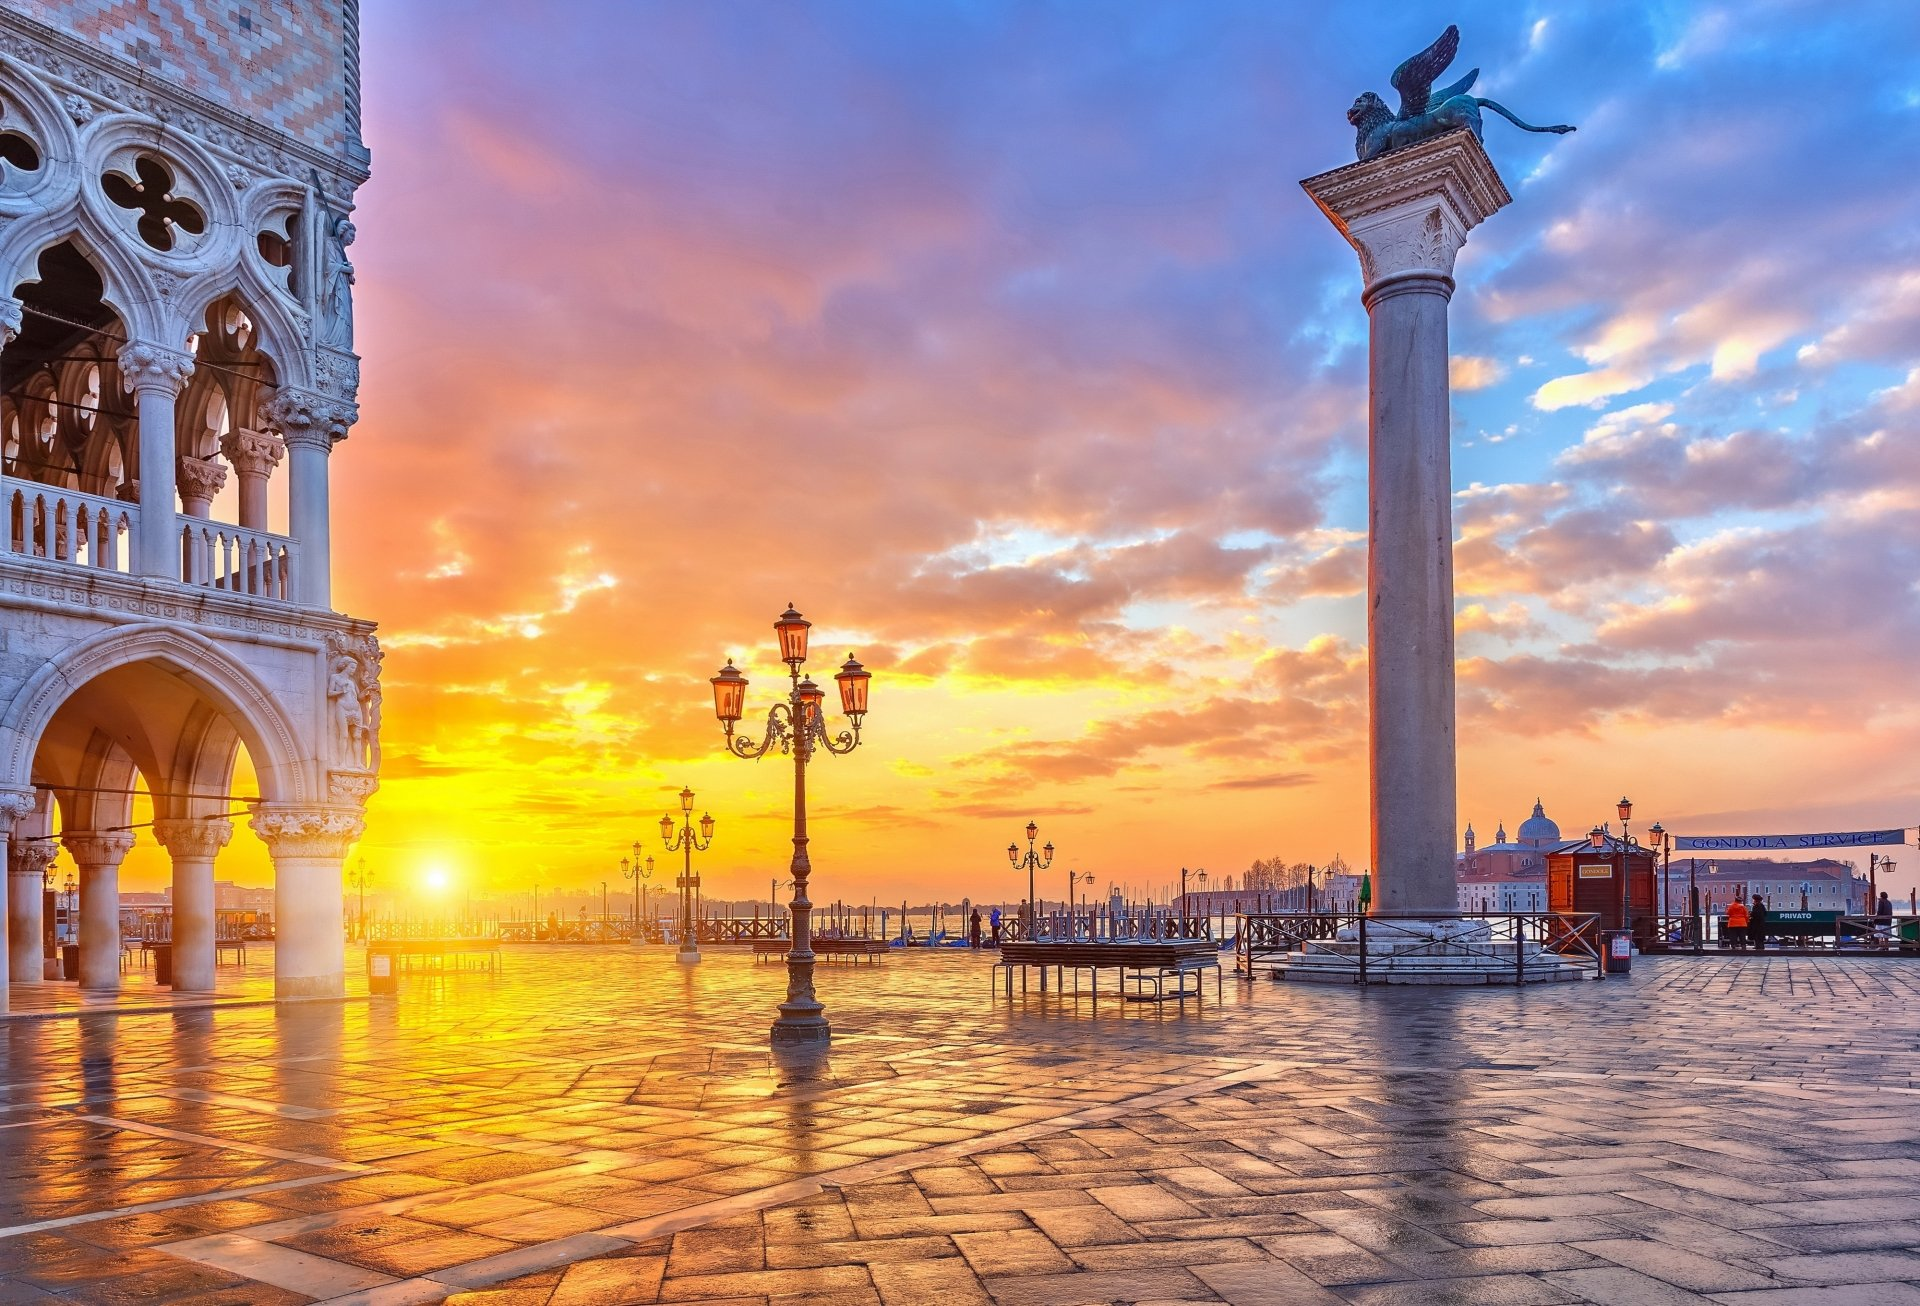 Man Made - Venice  Italy Wallpaper